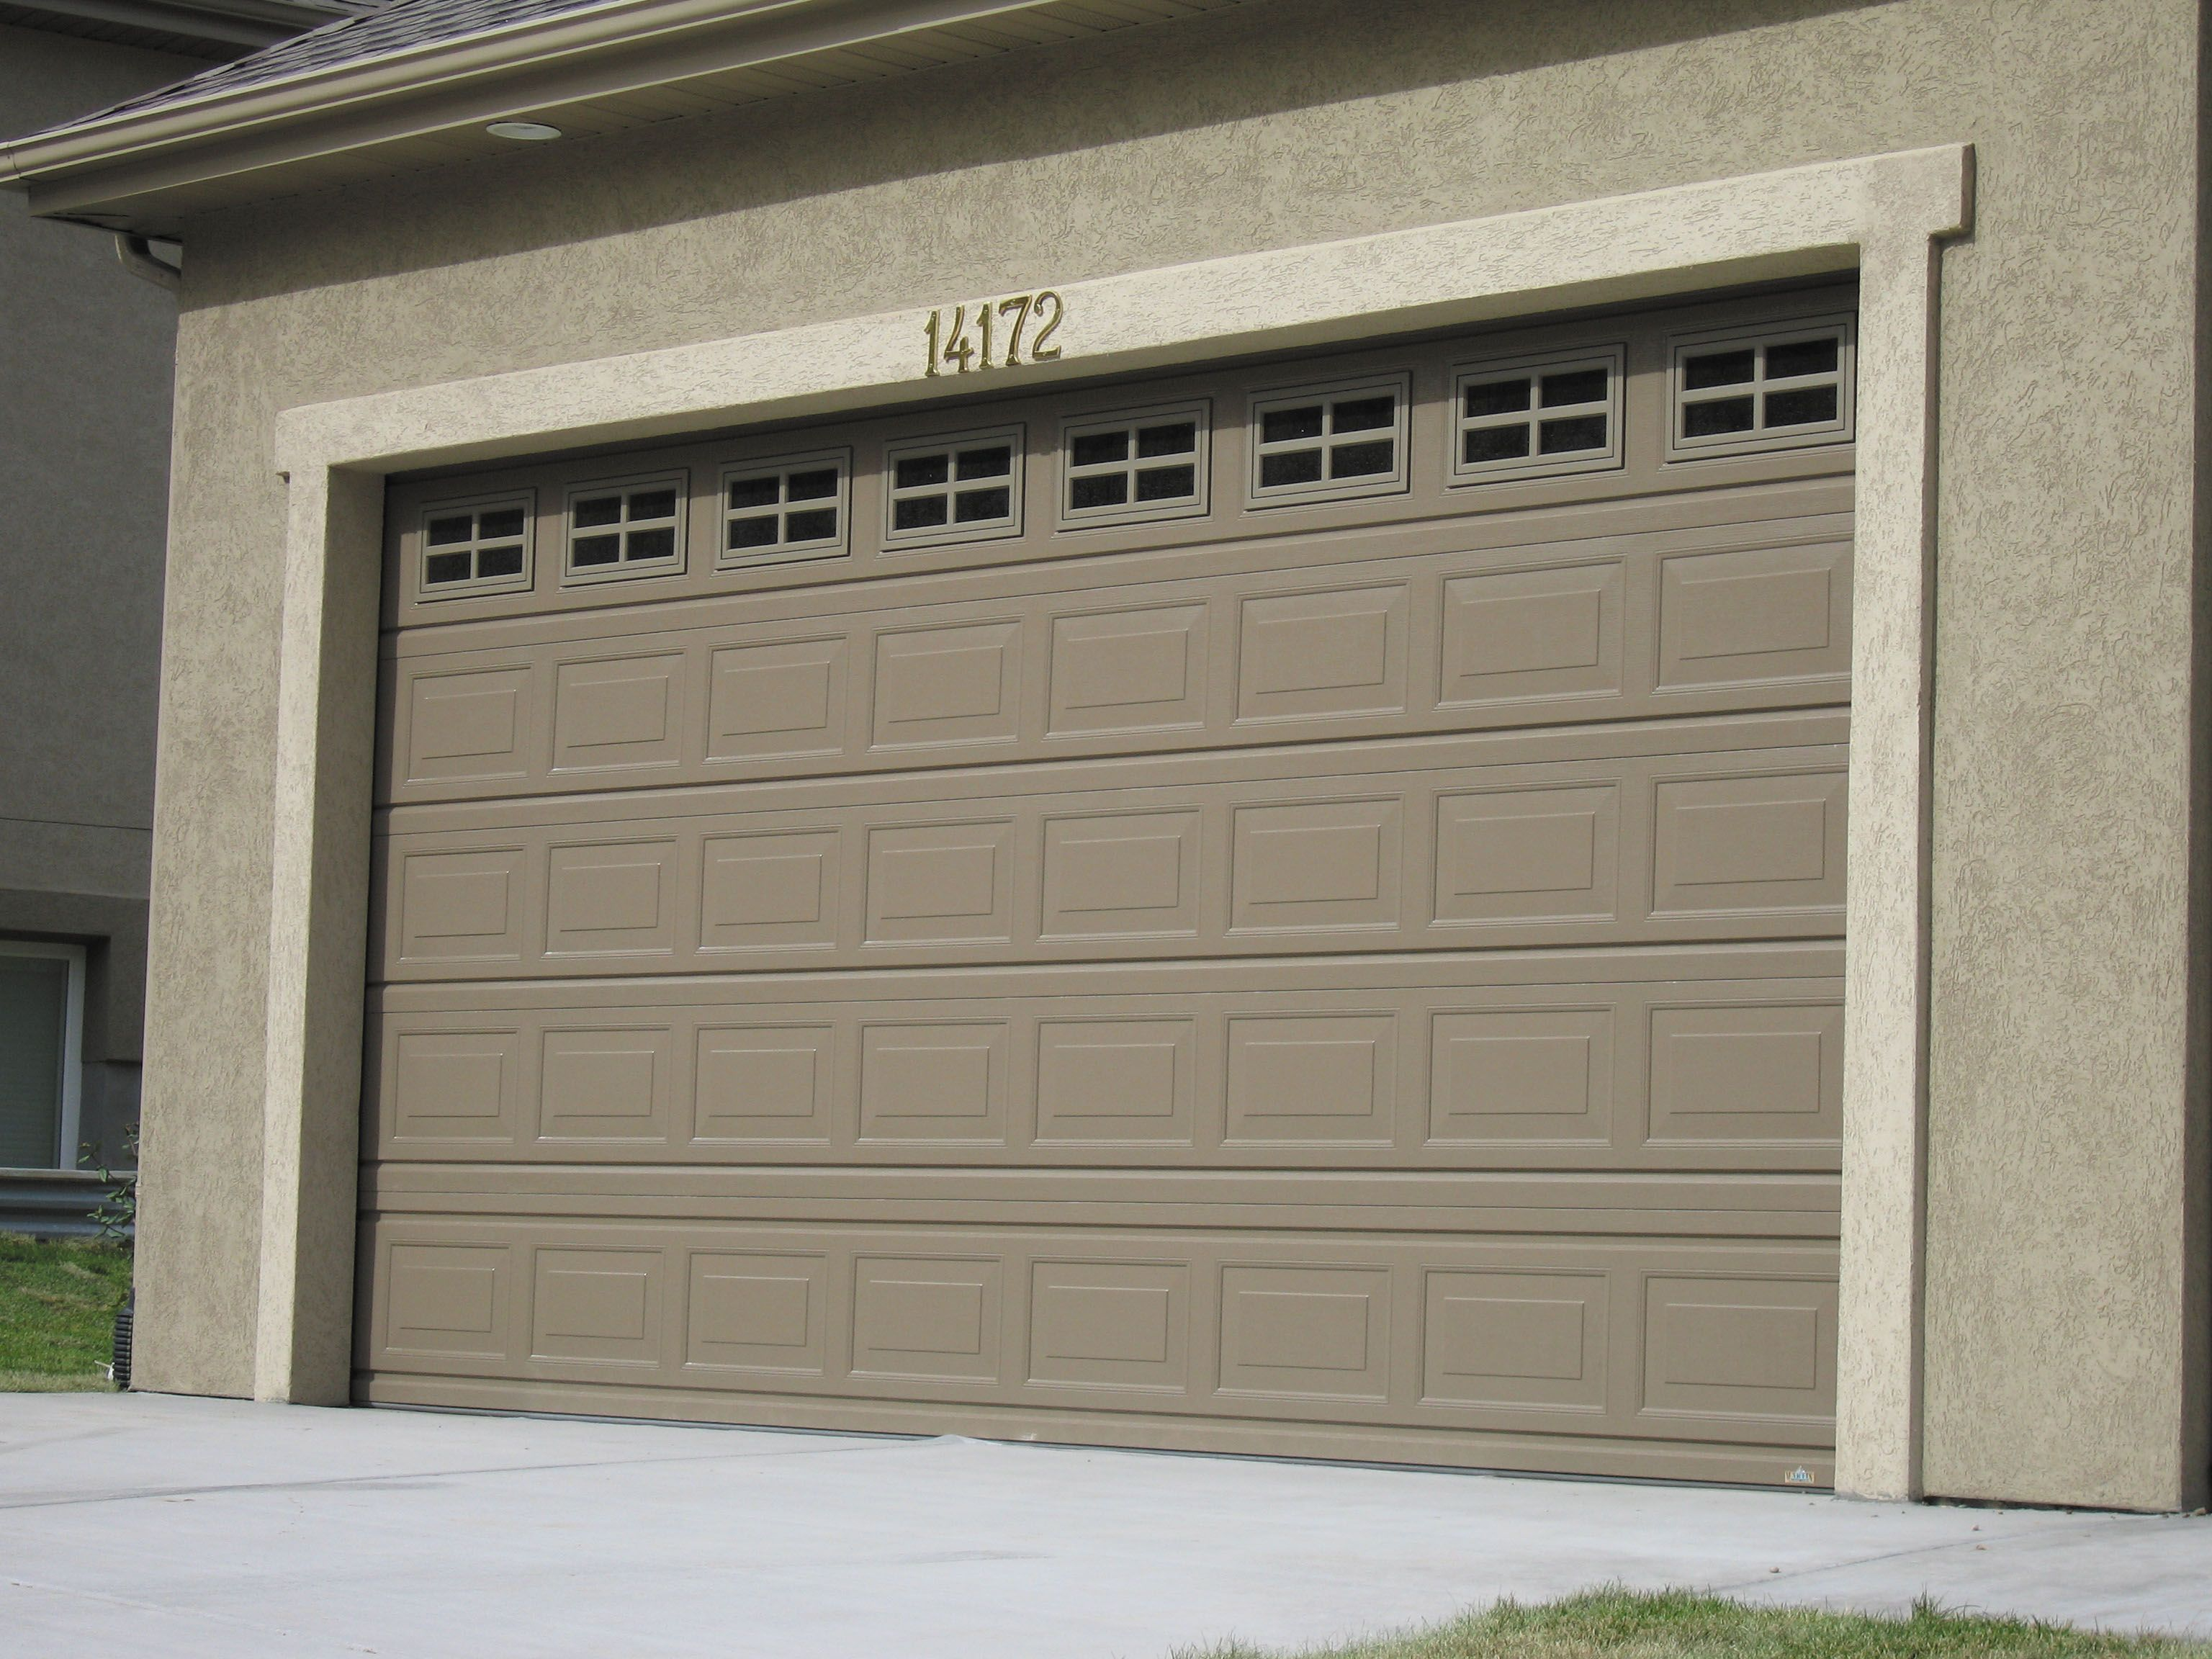 Garage Door Style To Match Front Door Windows Maybe In Light